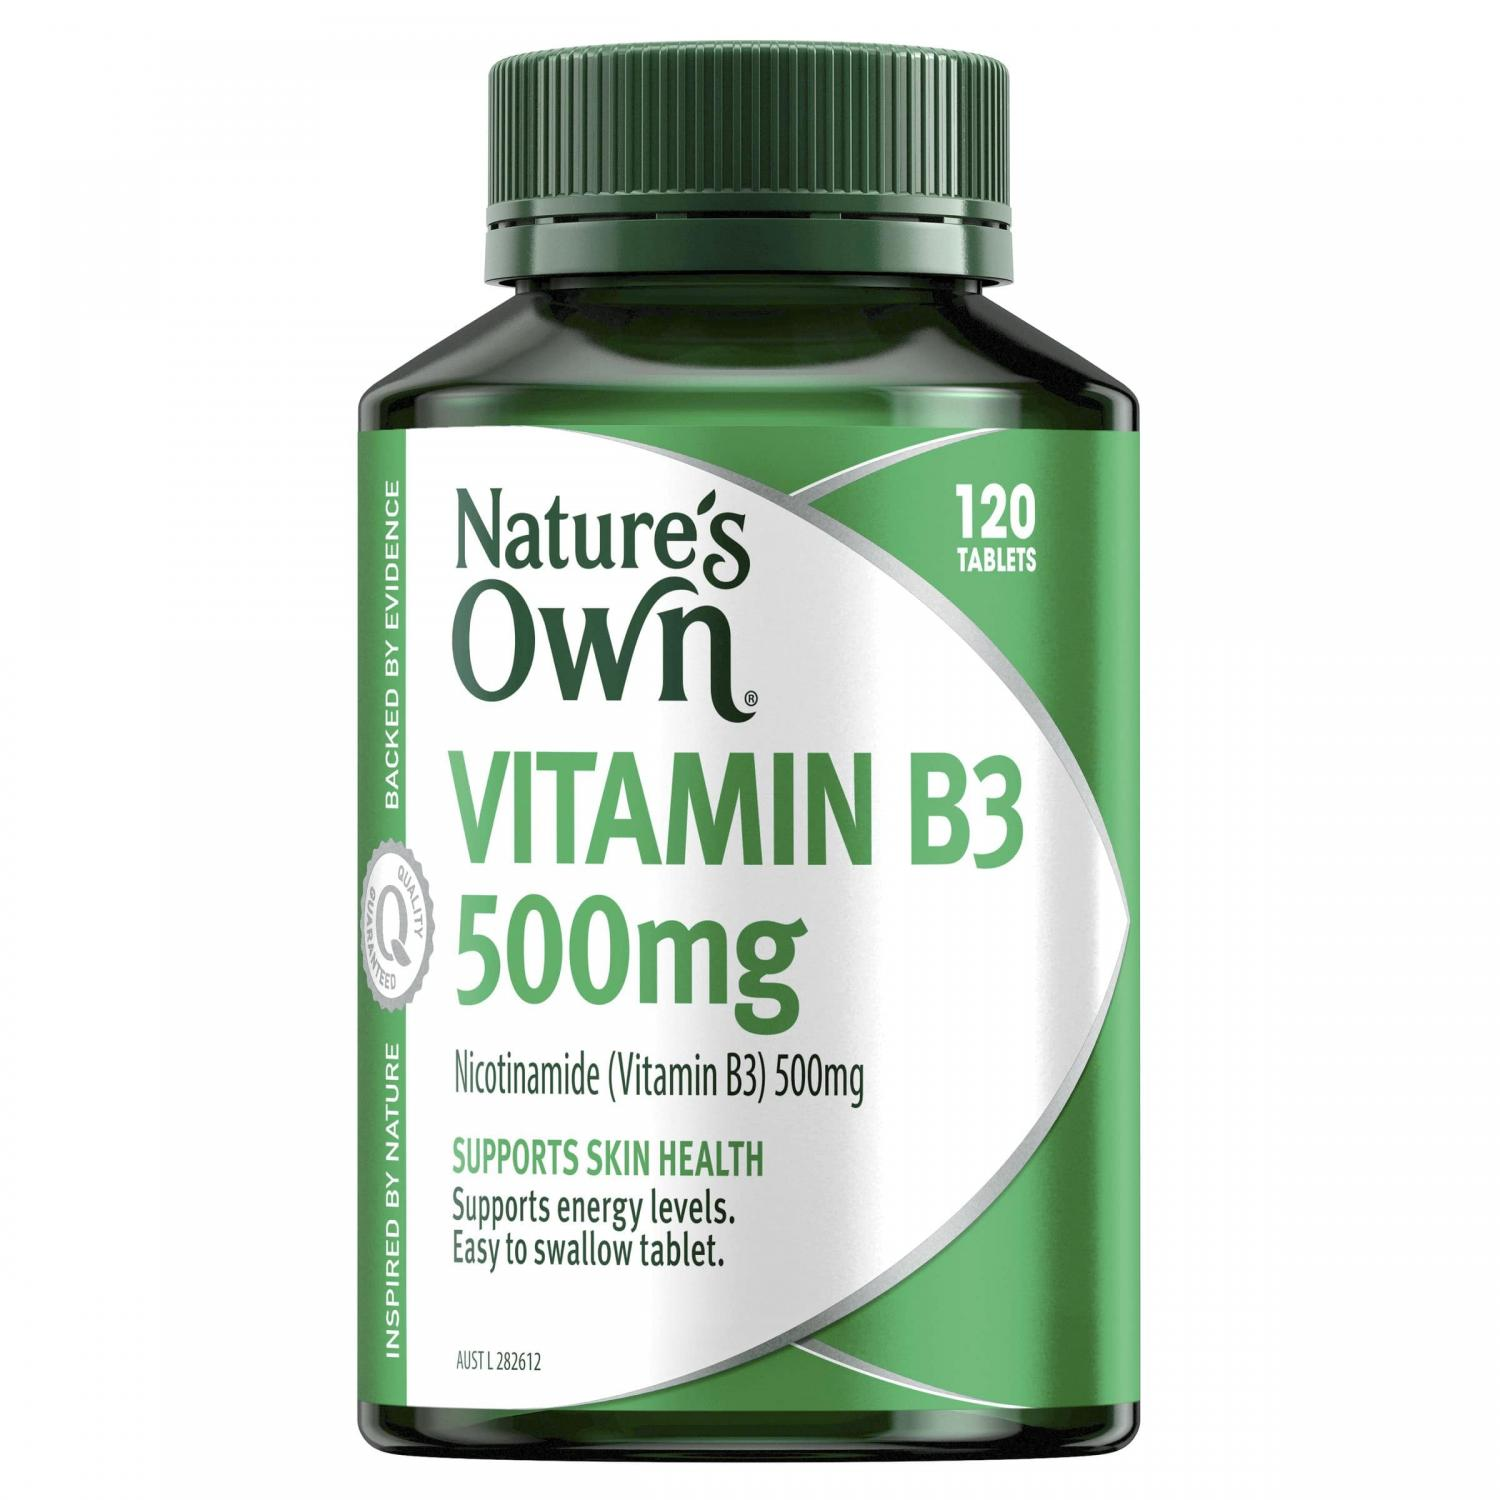 Thumbnail for Nature's Own Vitamin B3 500mg 120 tablets